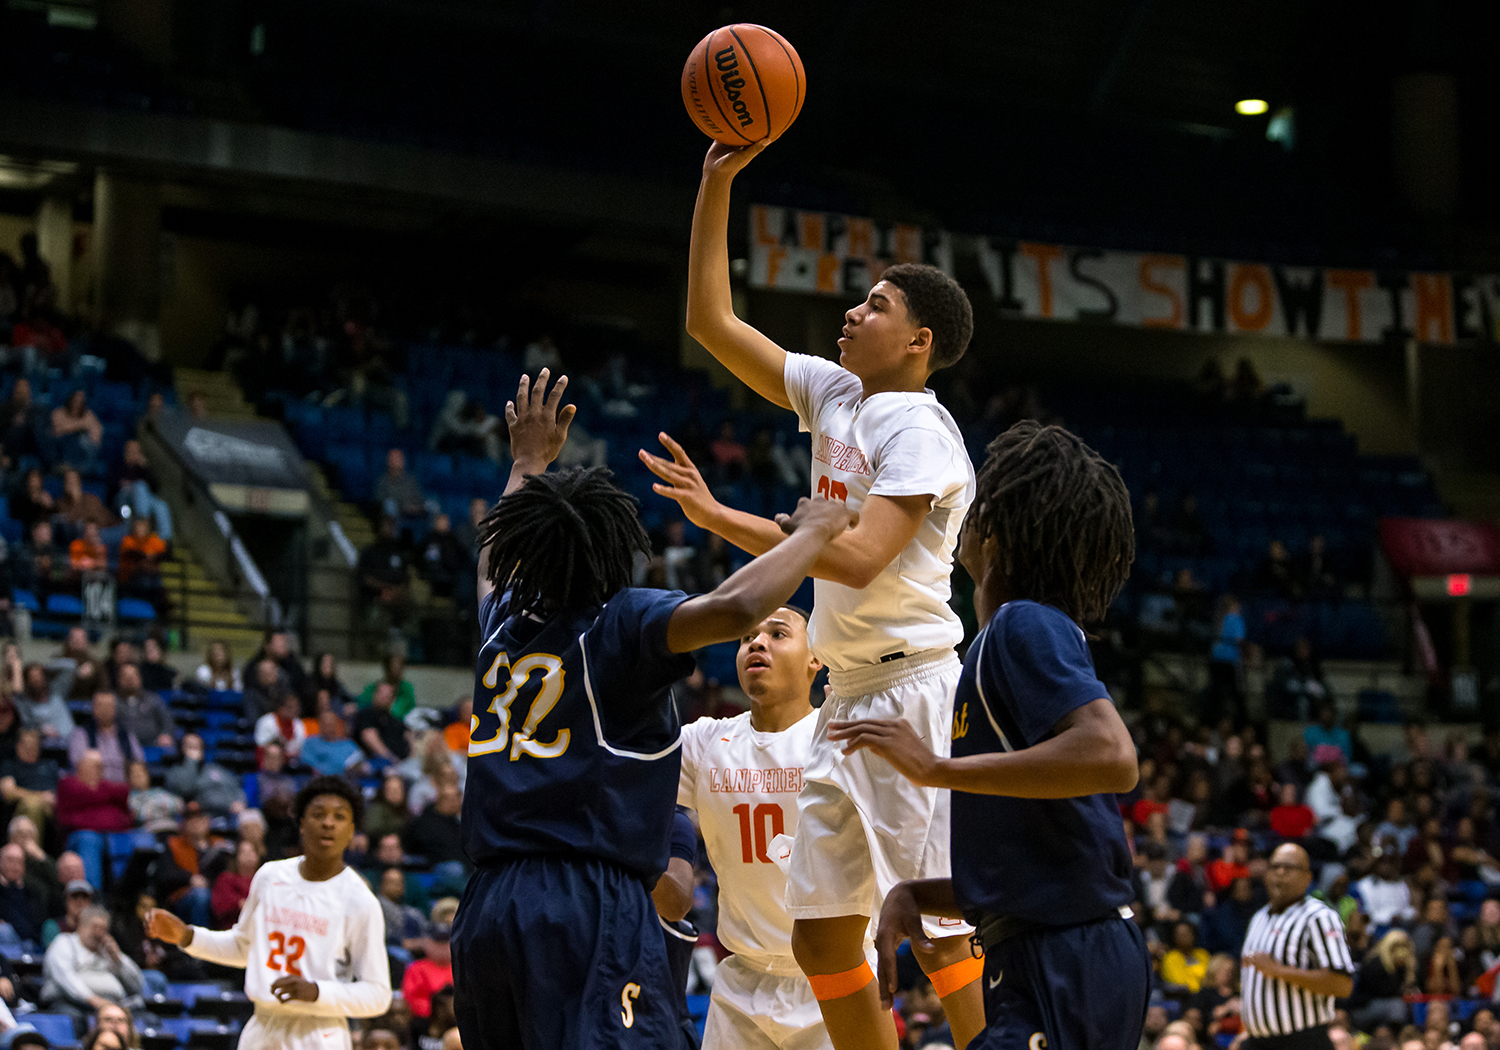 Lanphier's Tye Banks (23) puts up a shot against Southeast's Stepheon Sims (32) in the second quarter on opening night of the Boys City Tournament at the Bank of Springfield Center, Wednesday, Jan. 16, 2019, in Springfield, Ill. [Justin L. Fowler/The State Journal-Register]